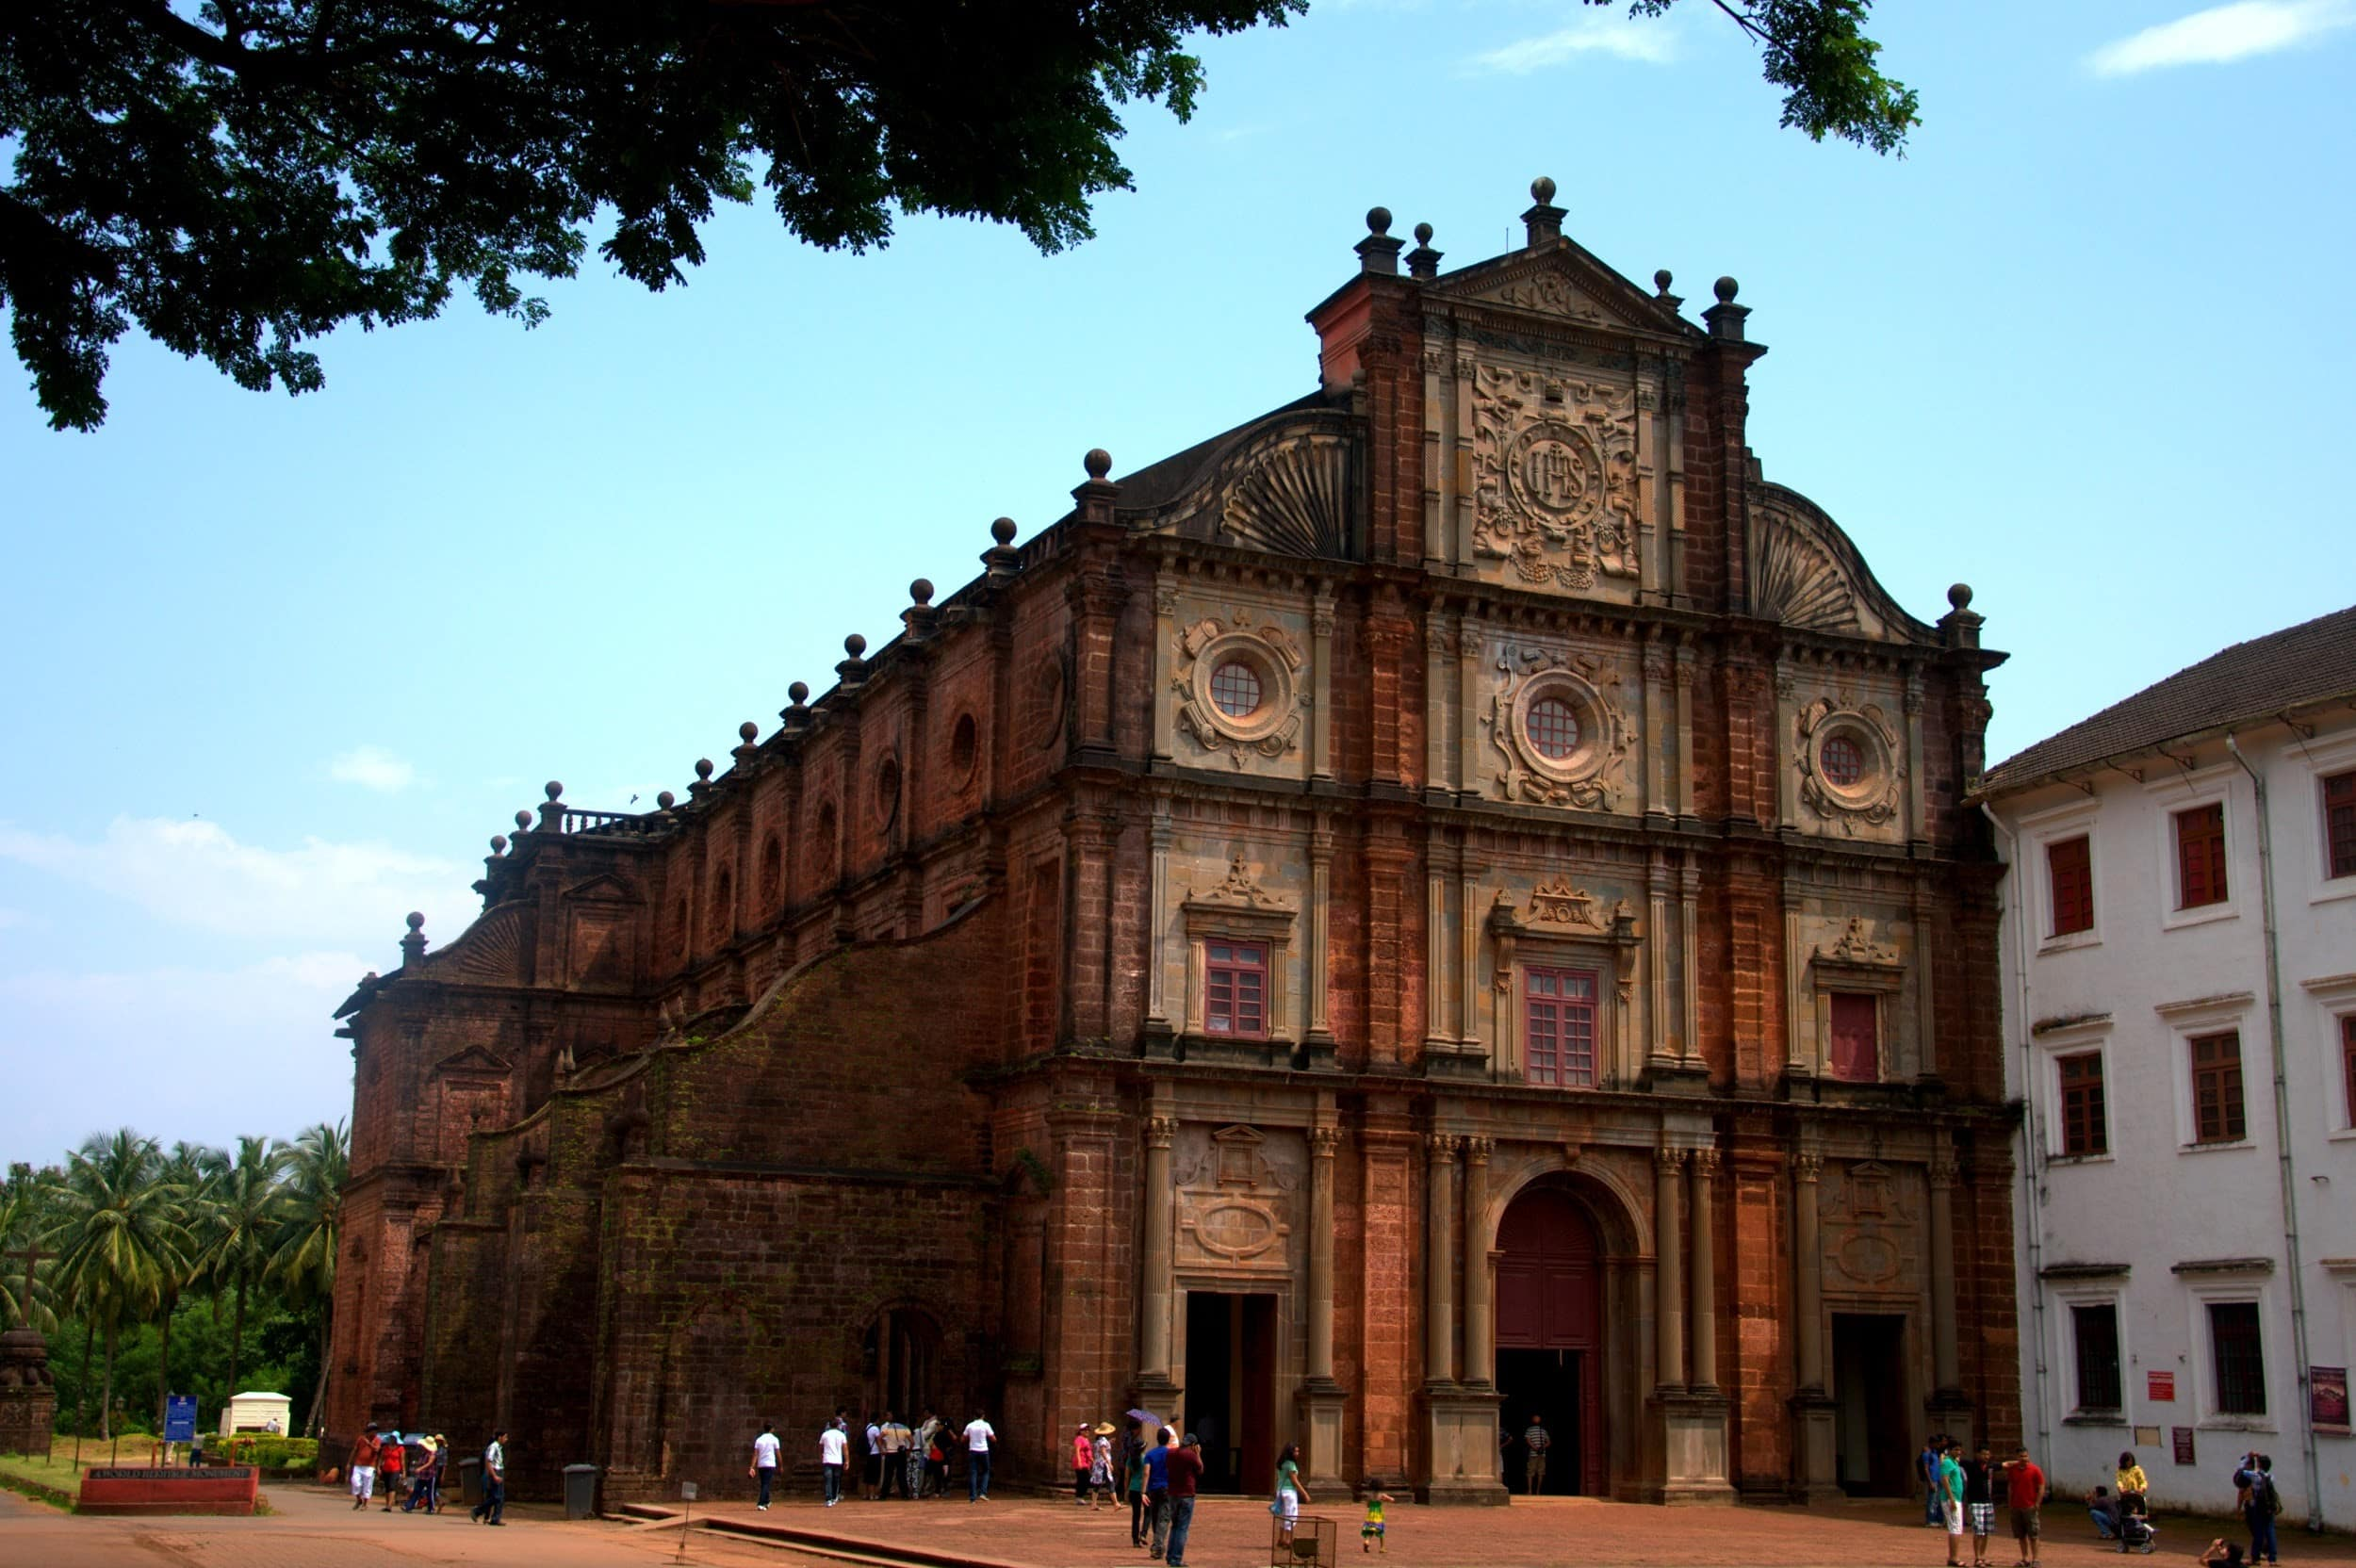 The Basilica of Bom Jesus from the outside.